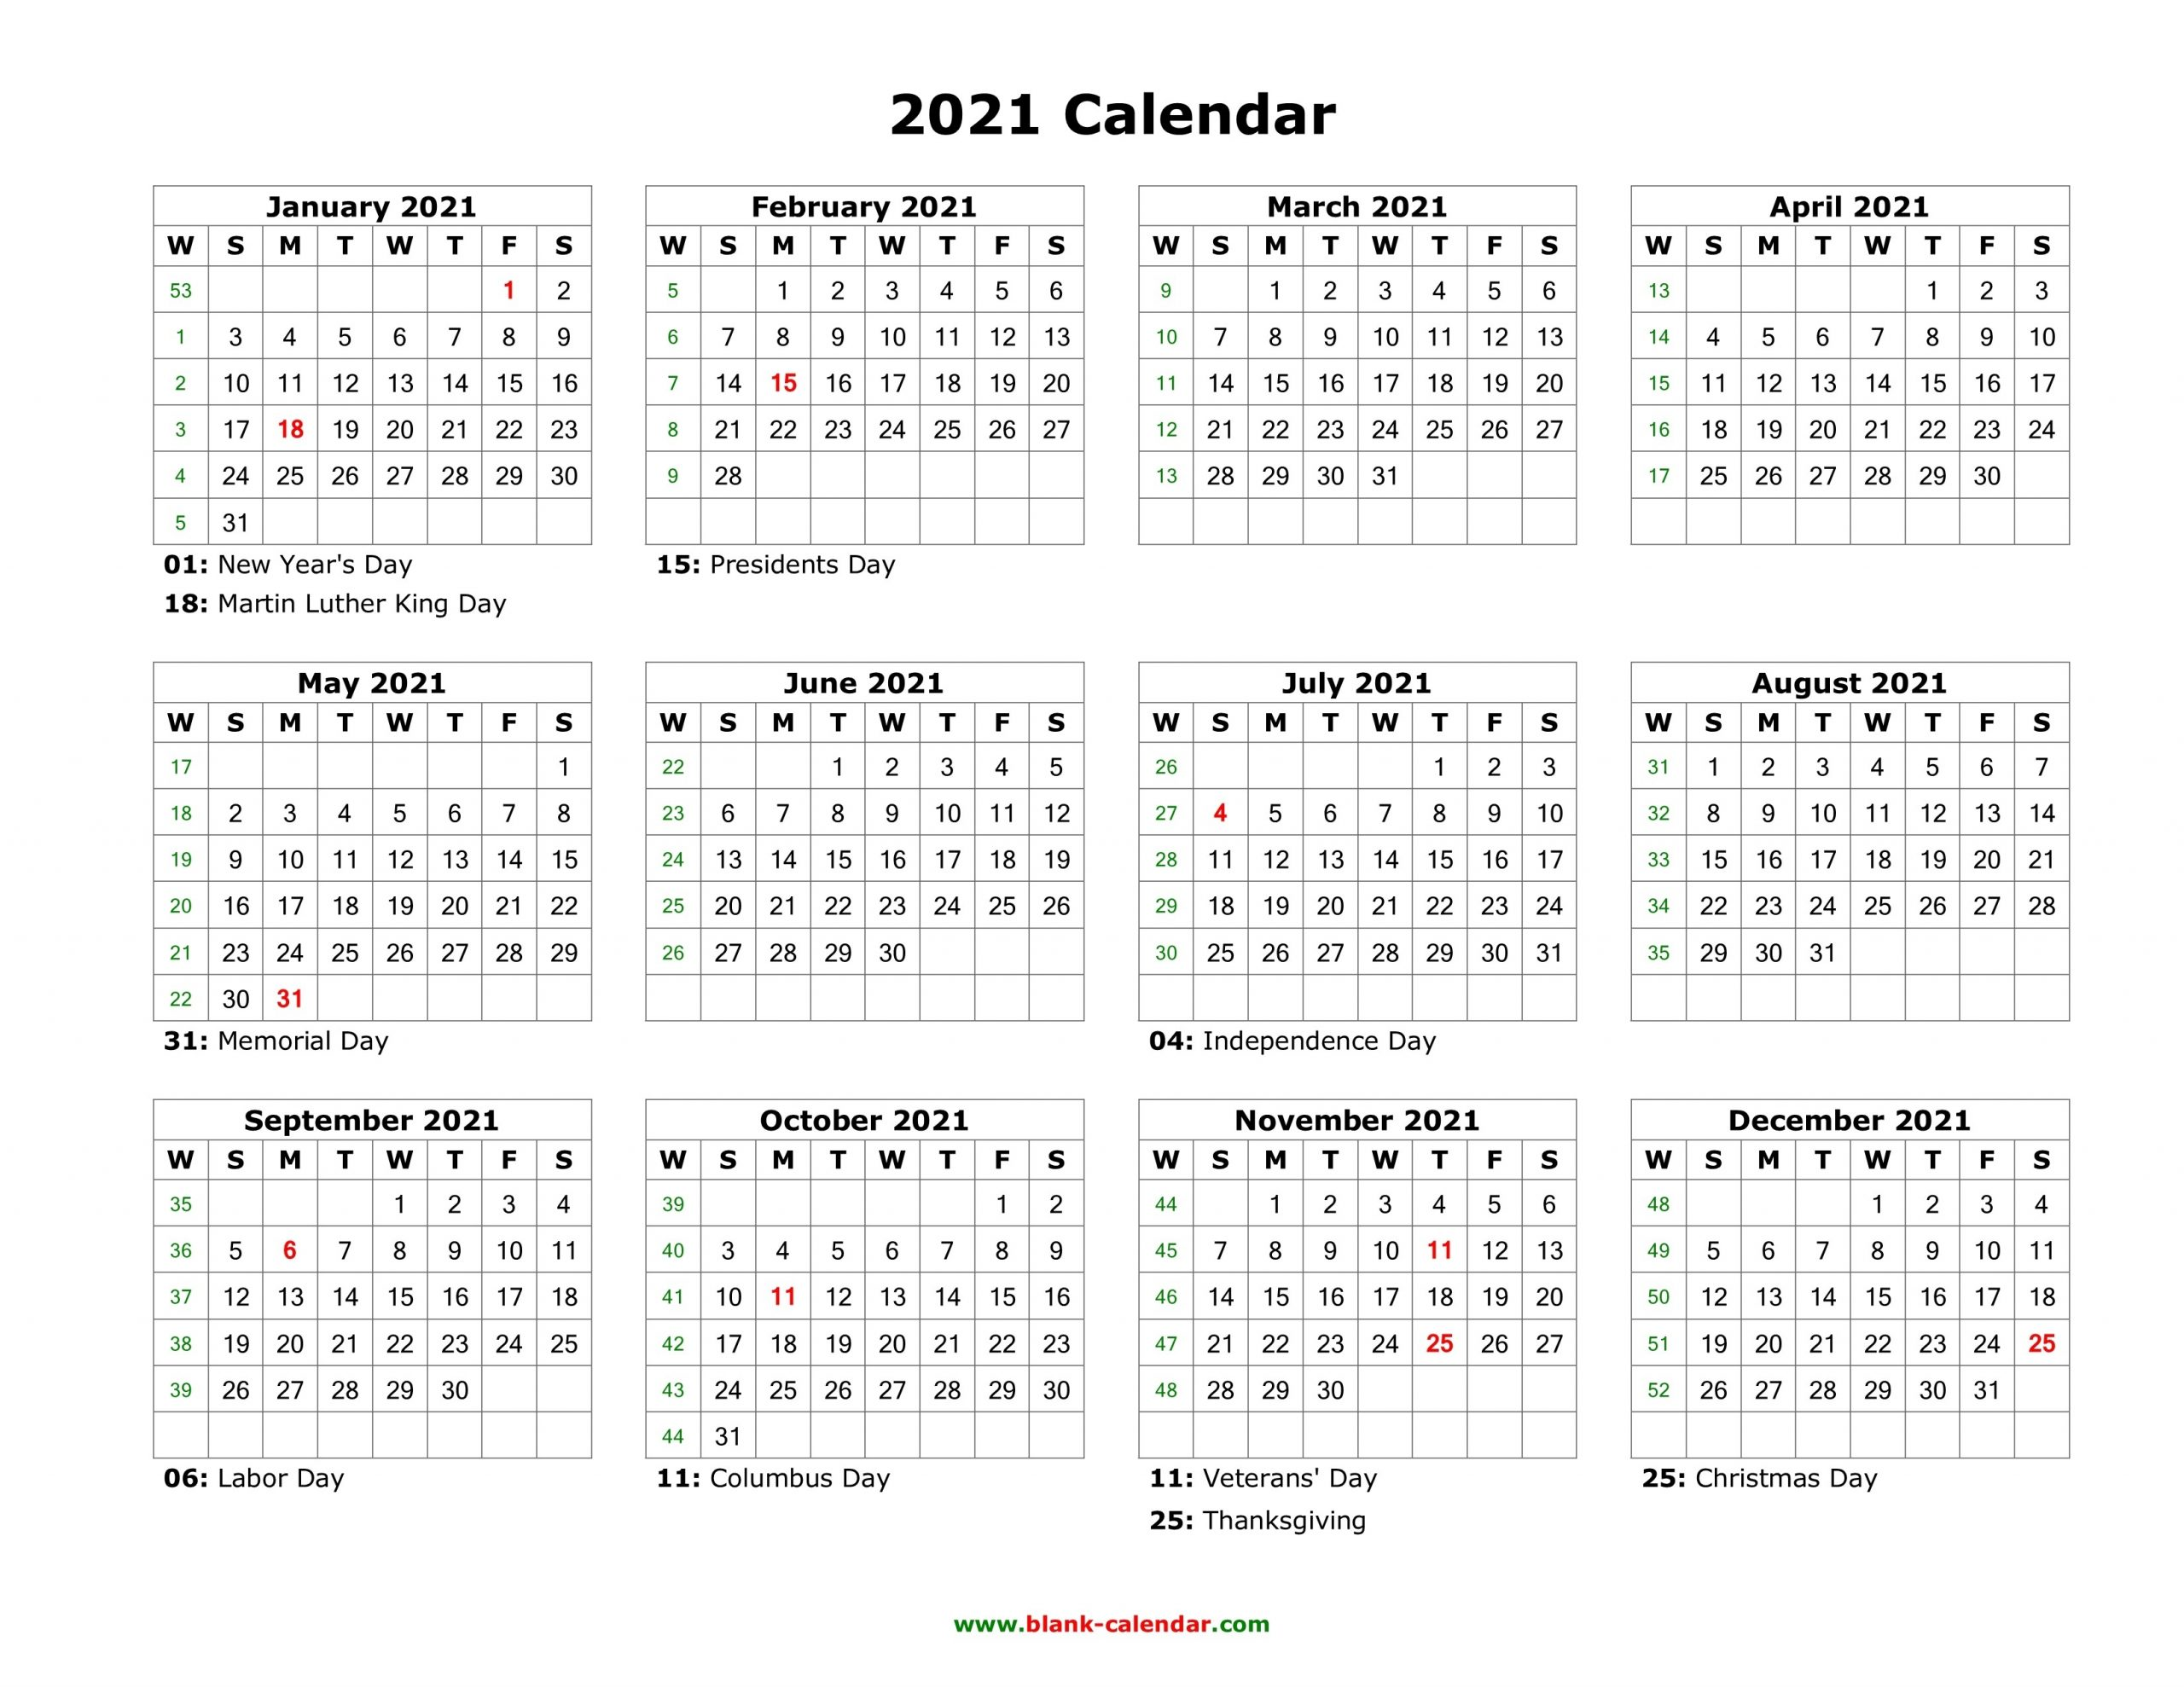 Blank Calendar 2021 | Free Download Calendar Templates-Free Printable Blank Monthly Calendar Year 2021